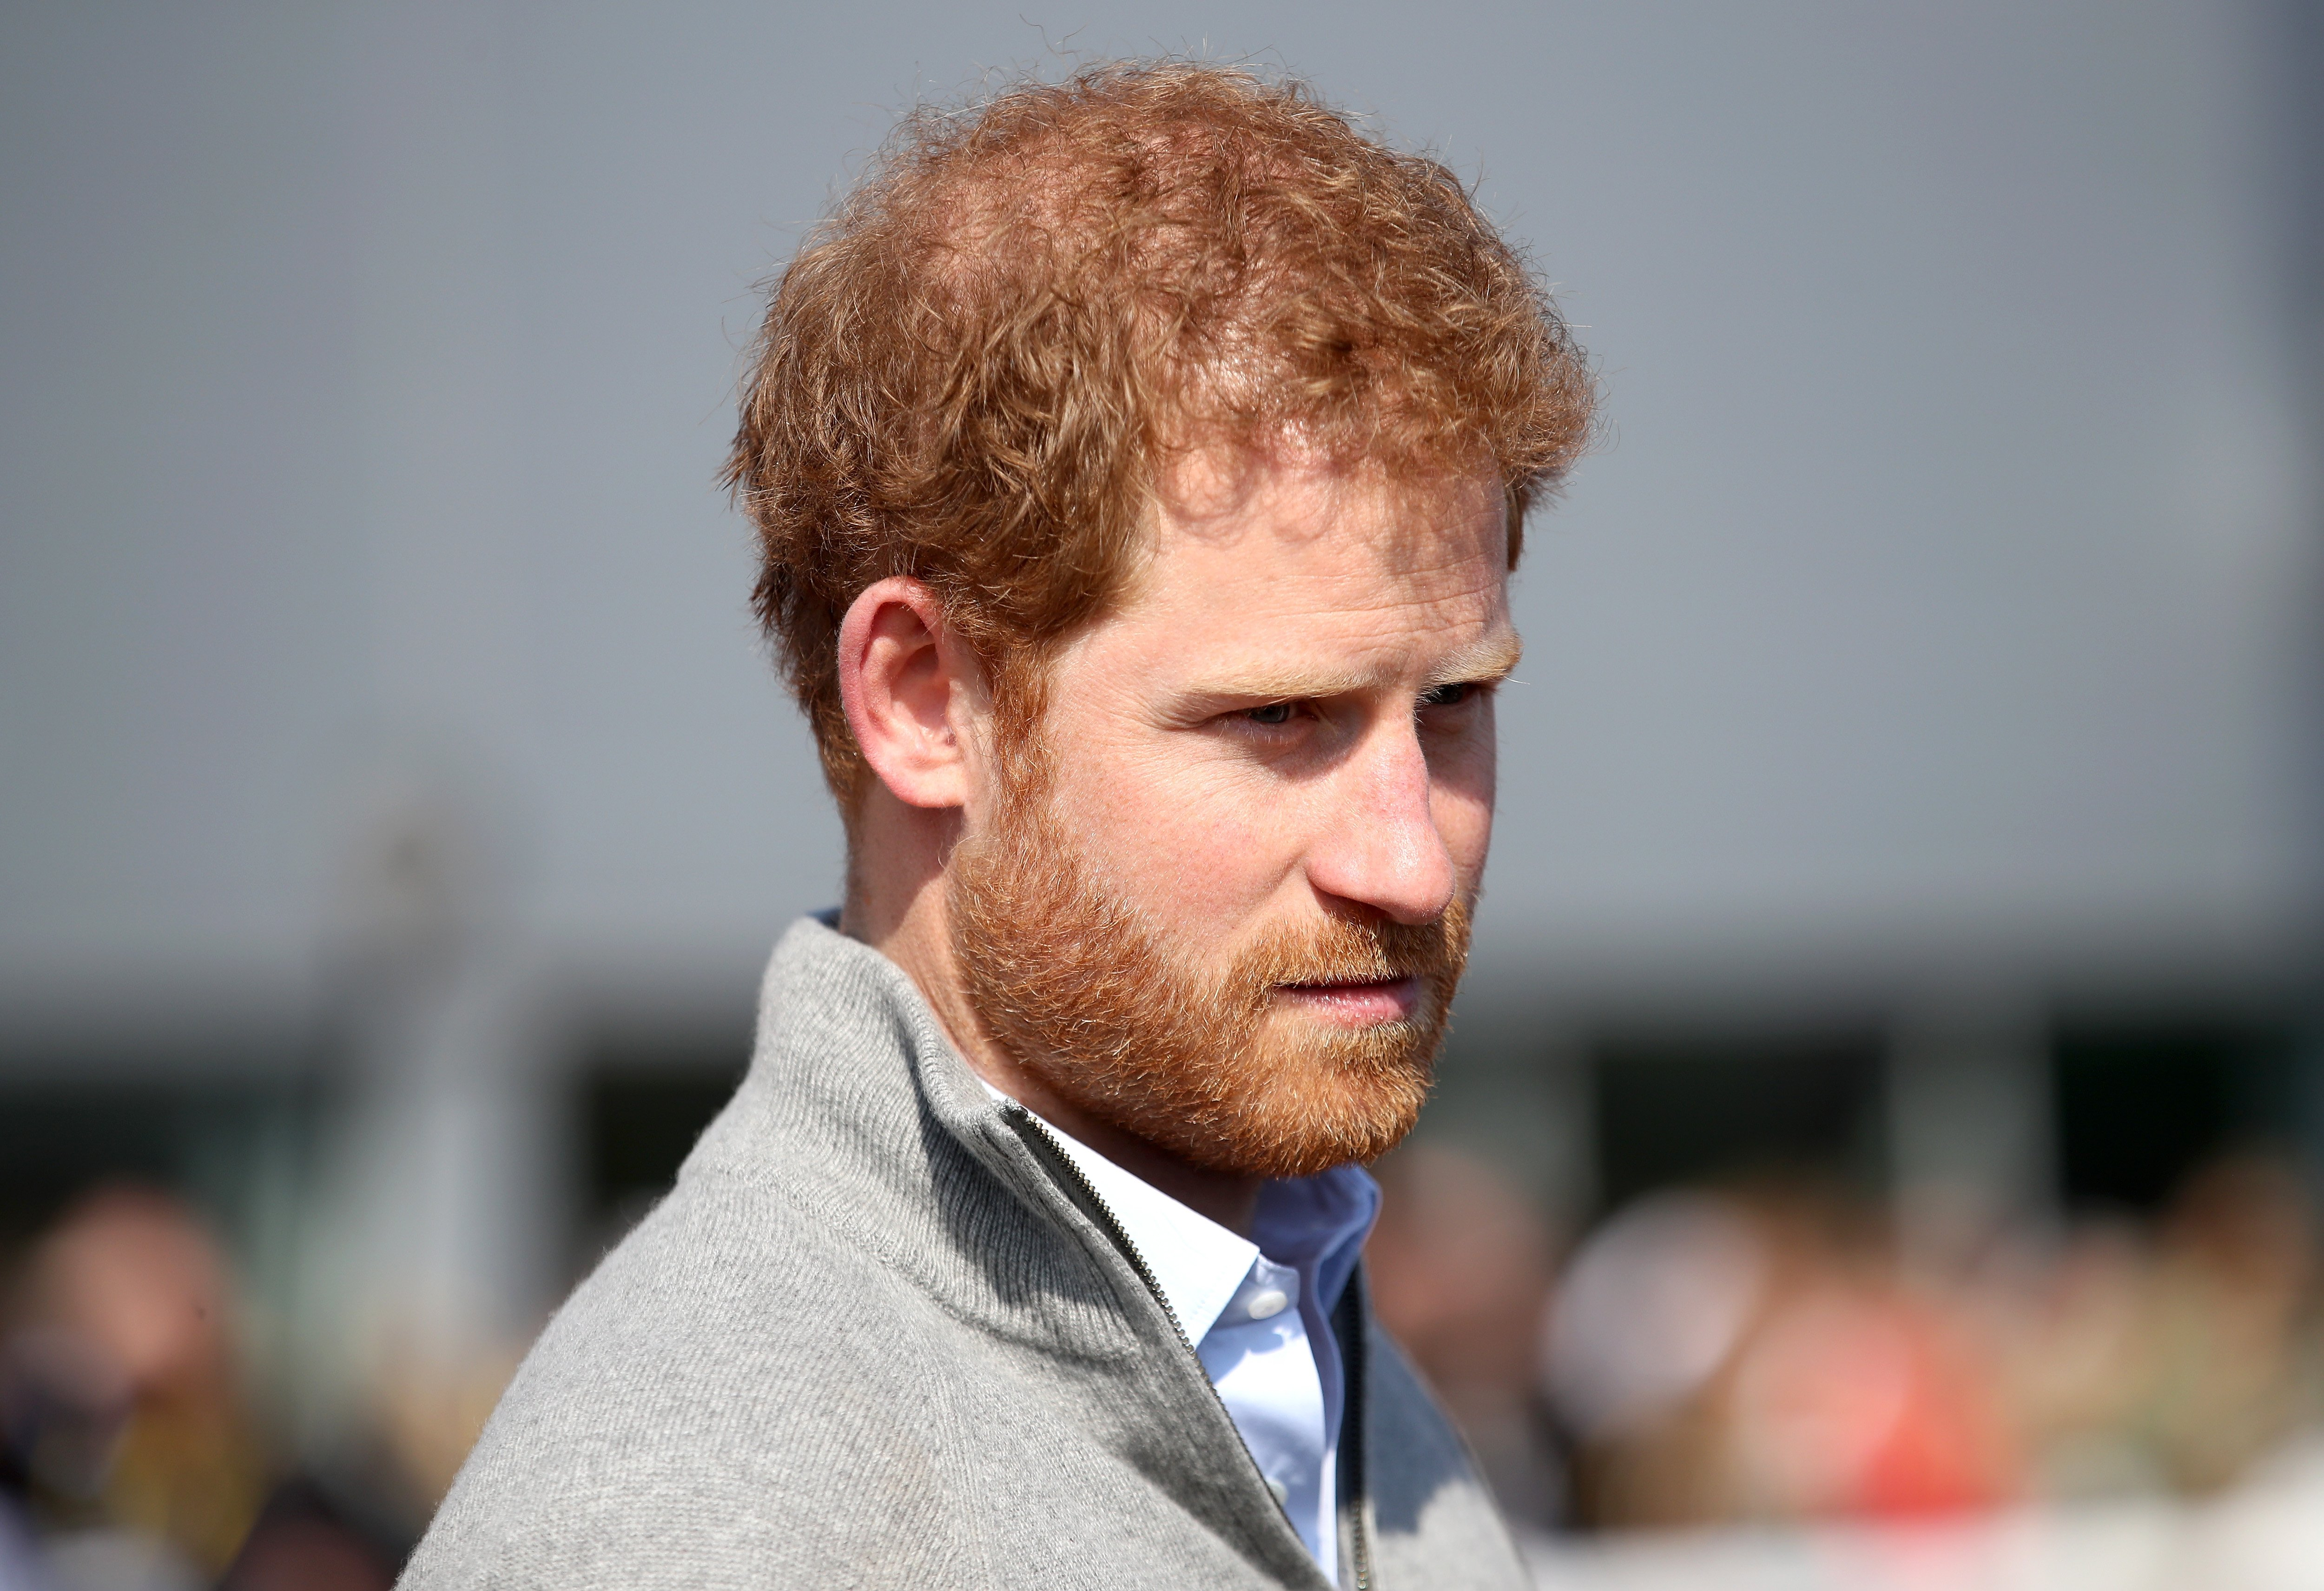 Prince Harry attends the UK team trials for the Invictus Games Toronto 2017 held at the University of Bath on April 7, 2017 | Photo: GettyImages